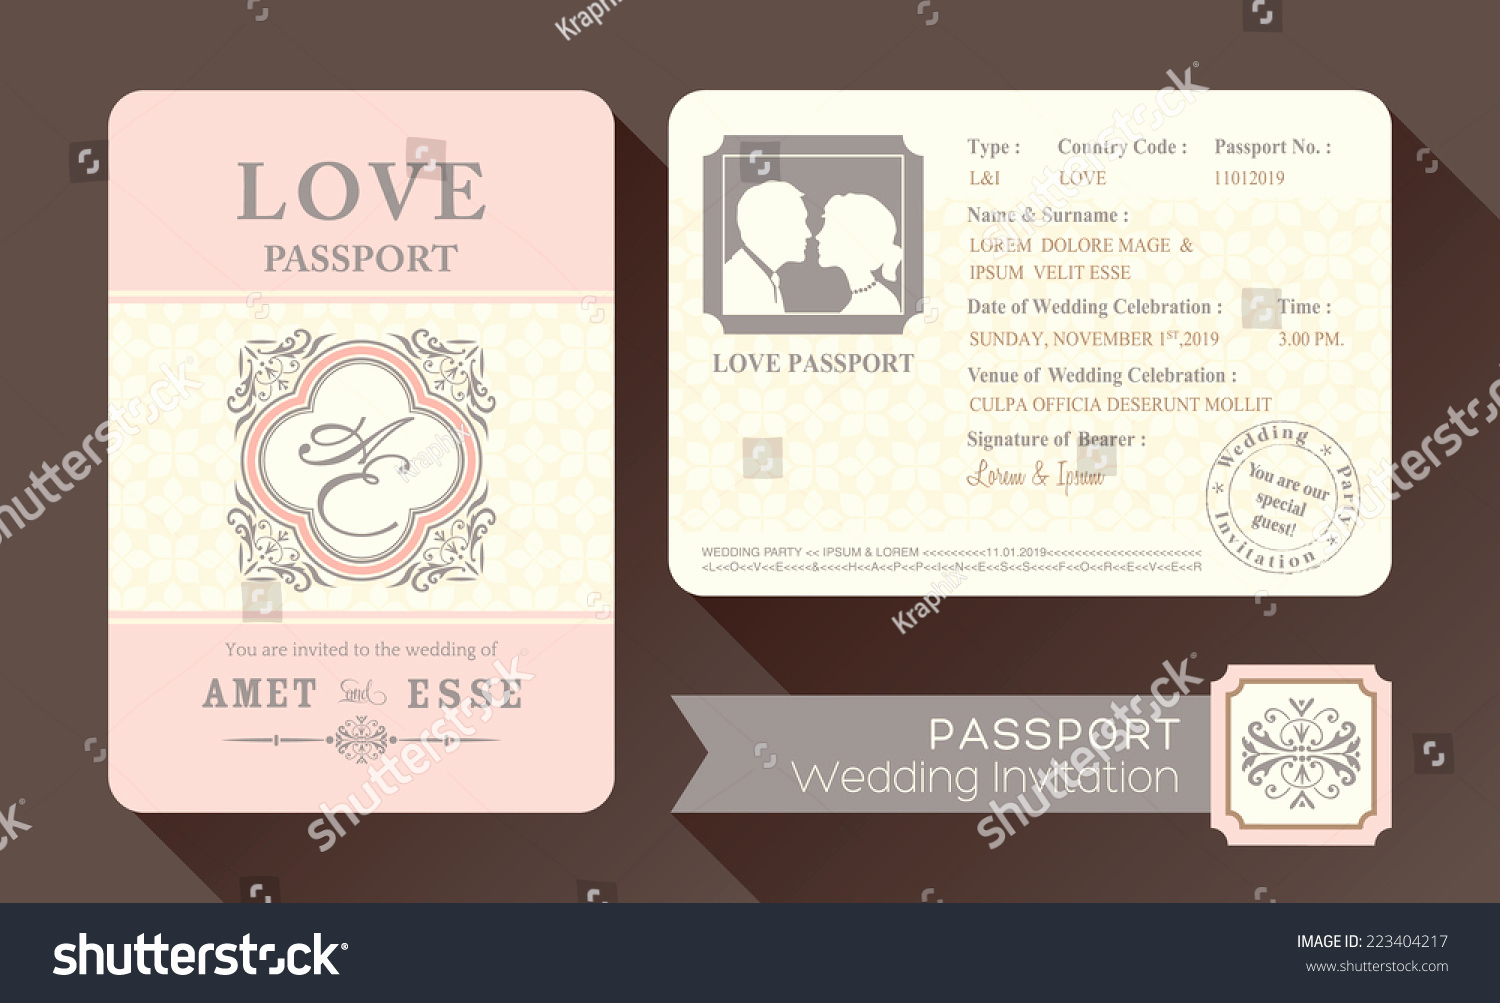 Passport Wedding Invitation Template Elegant Vintage Visa Passport Wedding Invitation Card Design